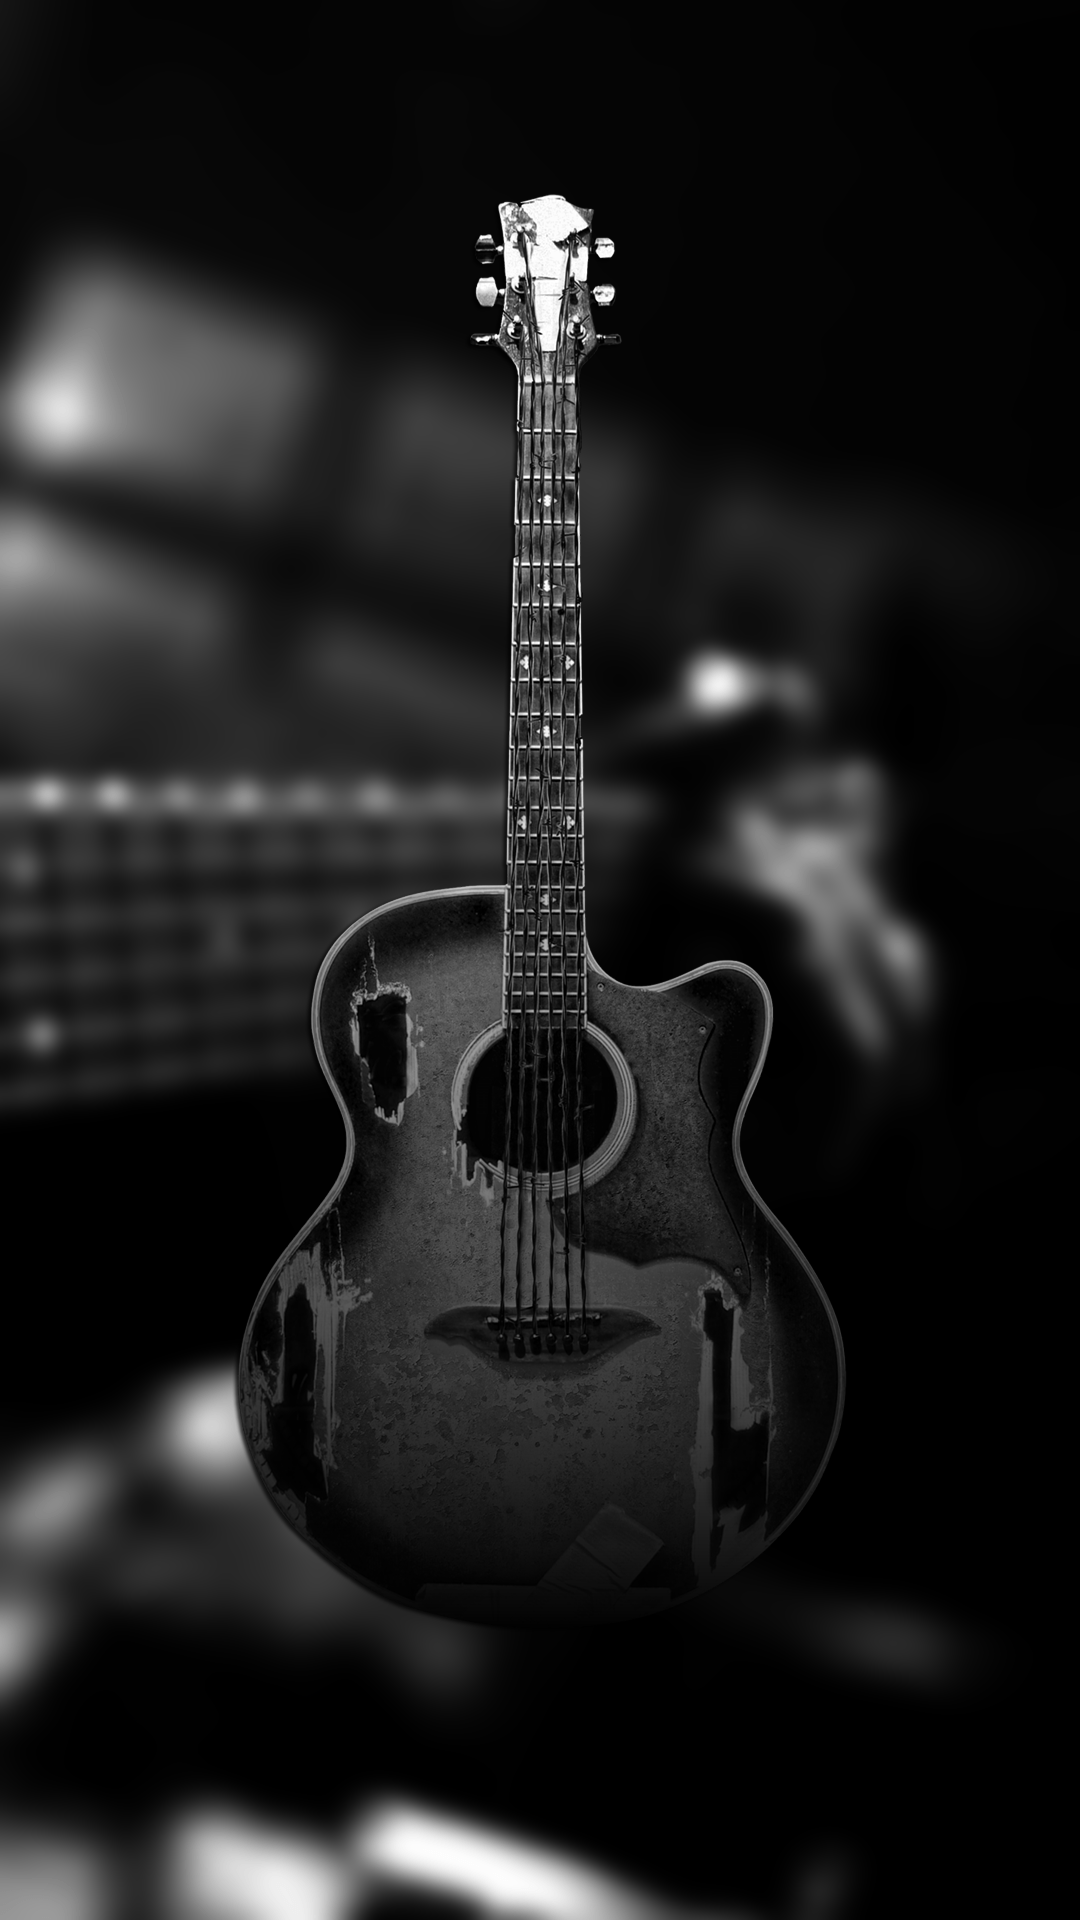 1080x1920 Ultra HD Black Guitar Wallpaper For Your Mobile Phone ...0035